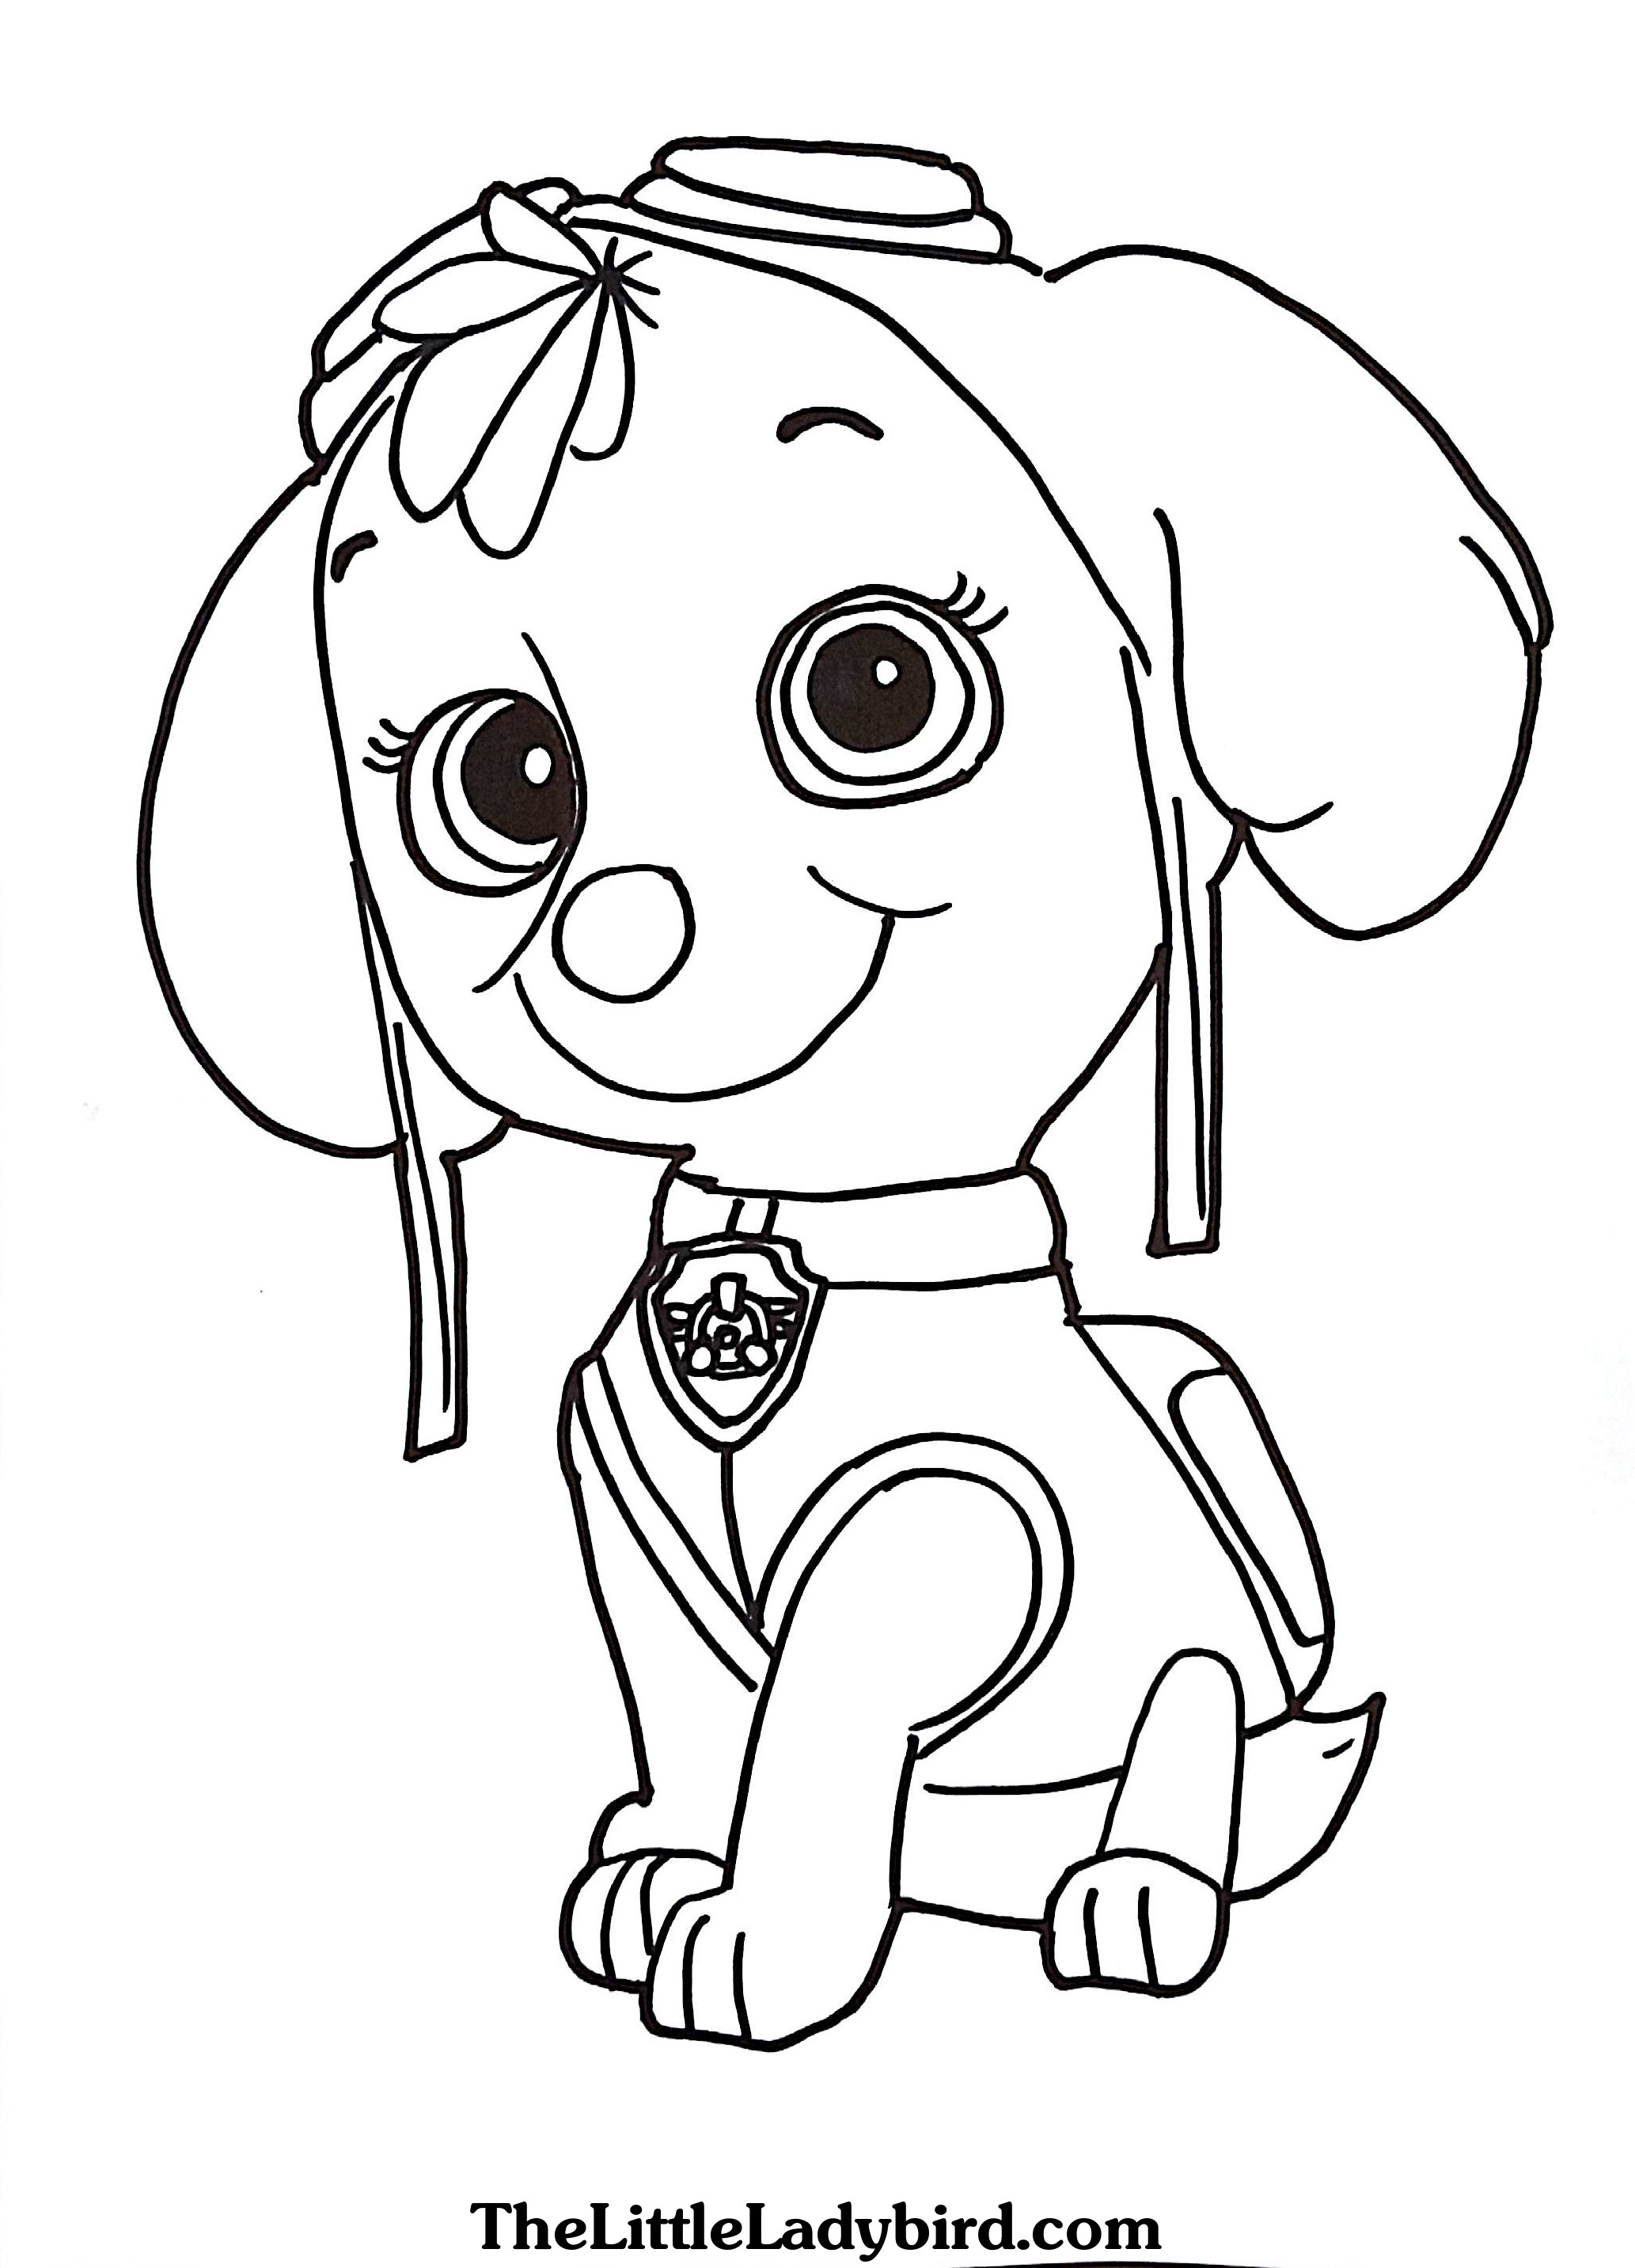 2066x2866 Paw Patrol Coloring Pages Skye For Cure Print Image From 1